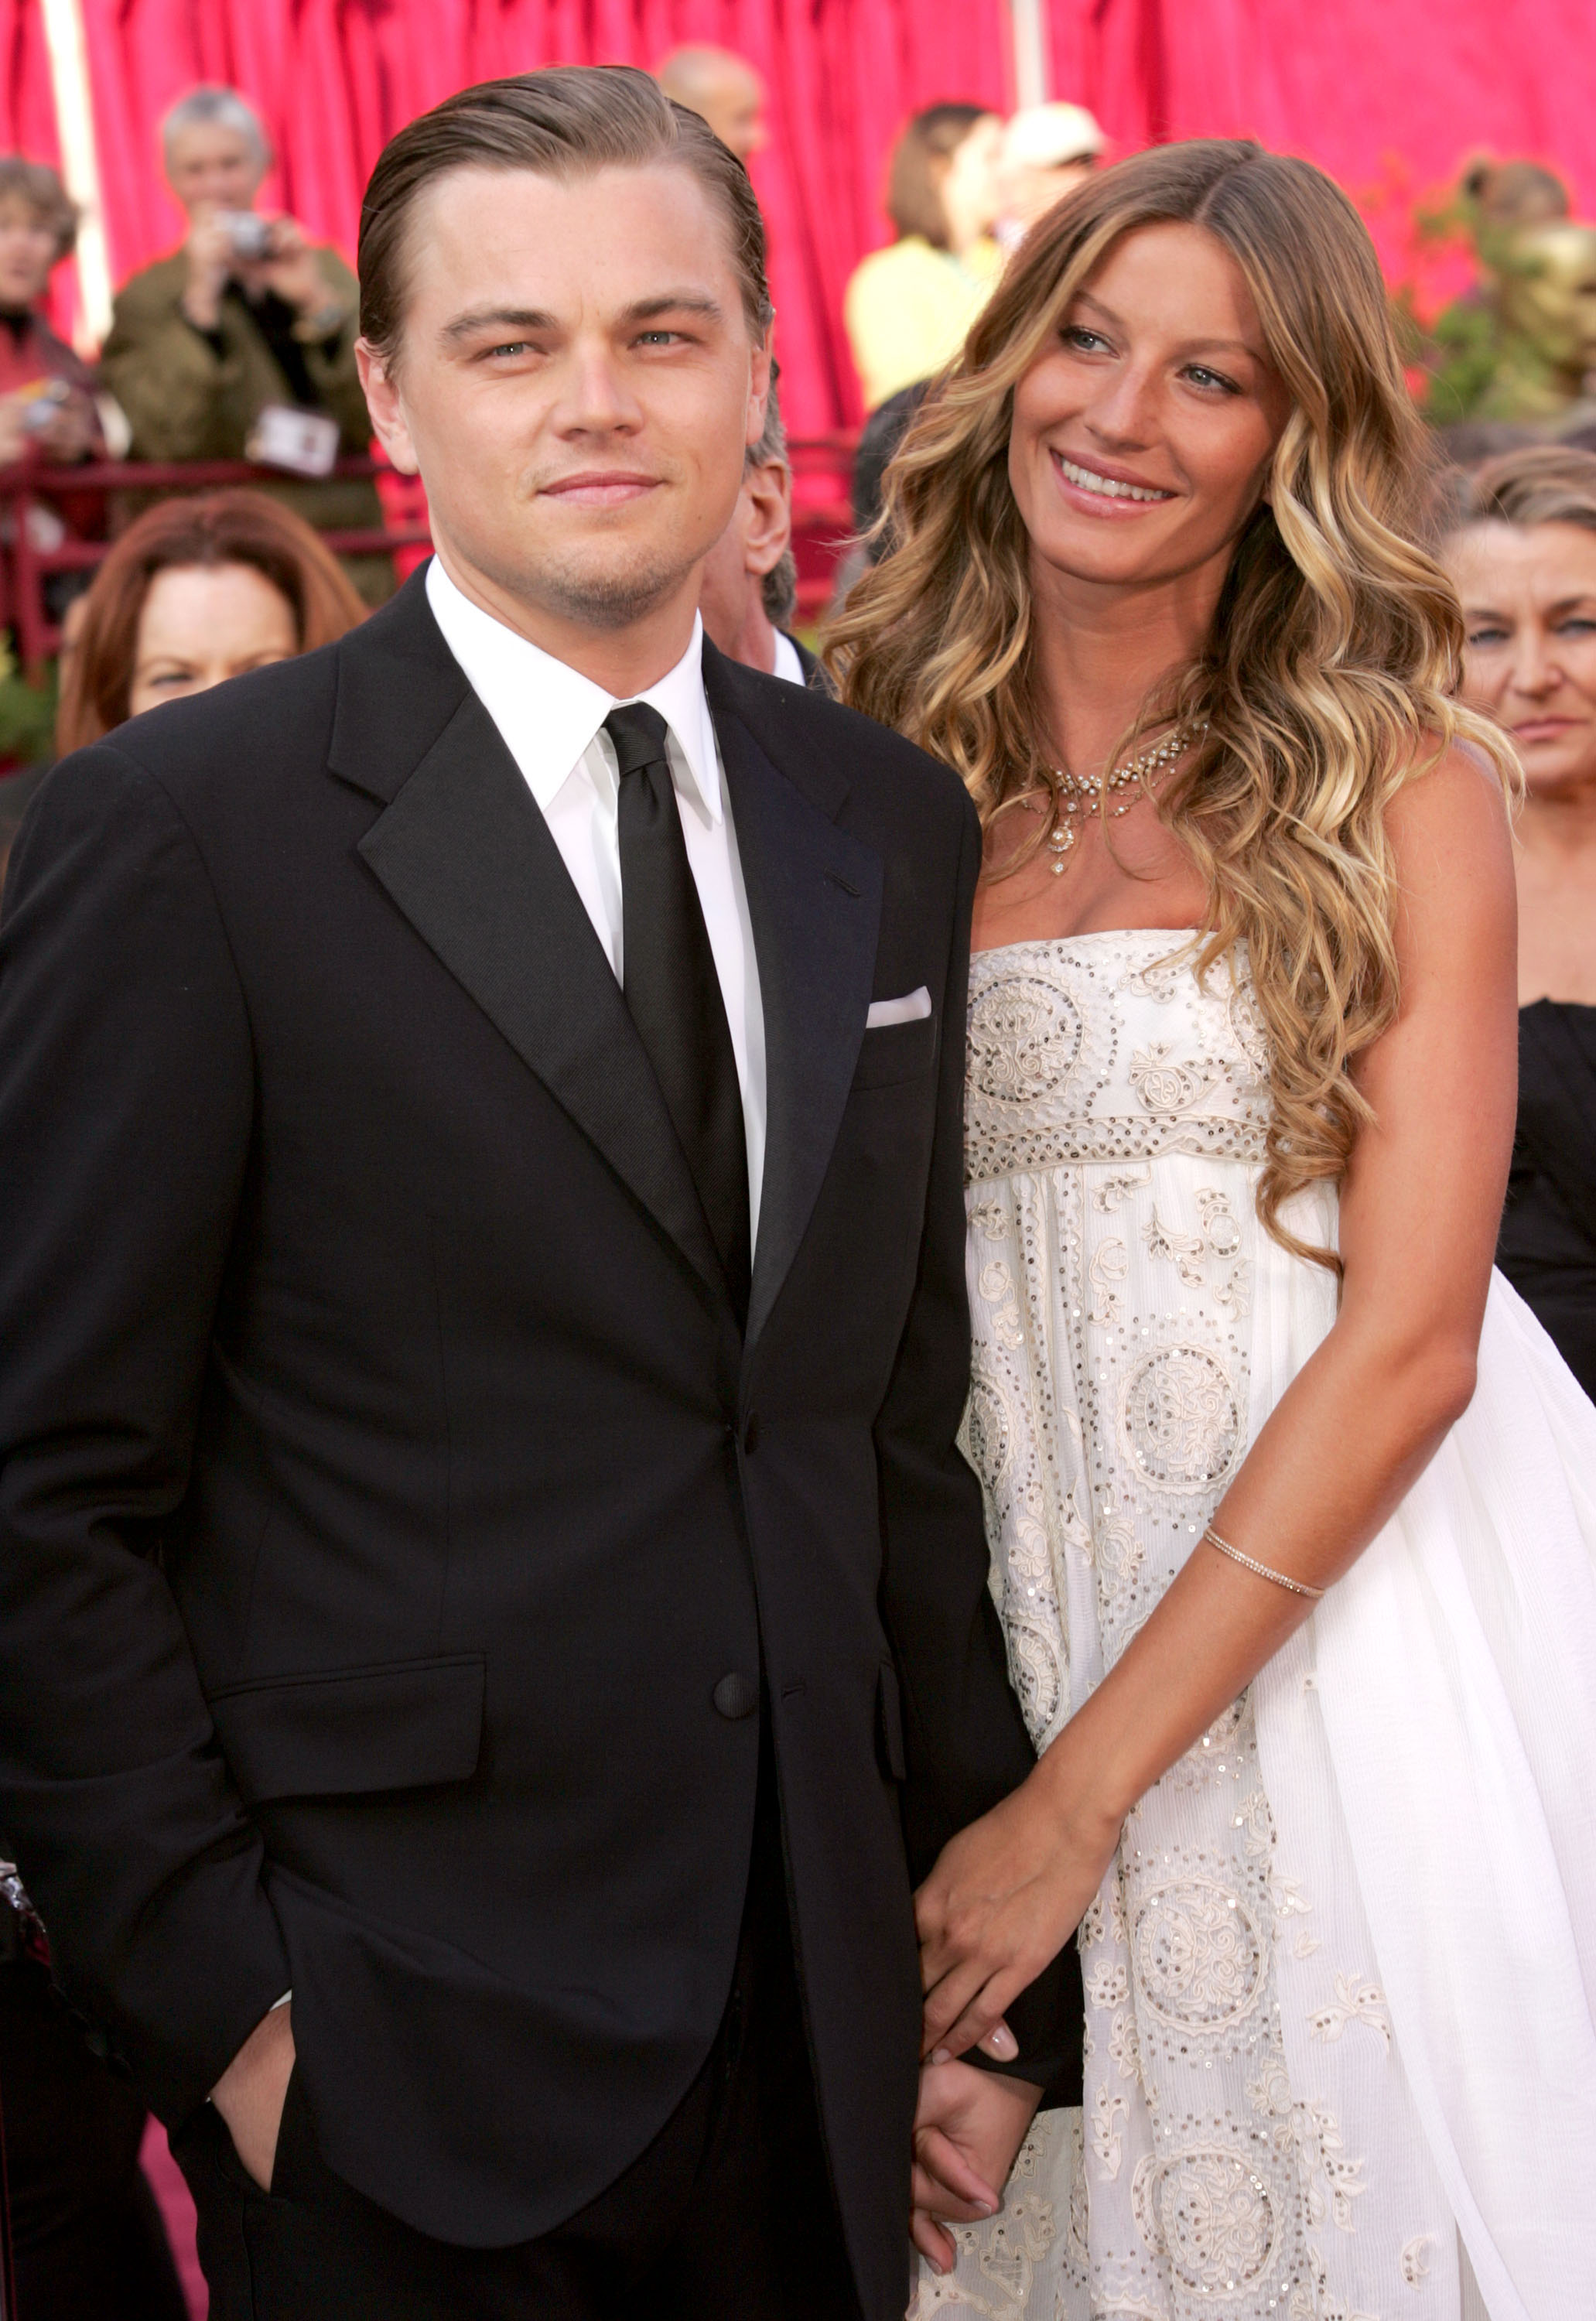 Gisele Bündchen Reportedly Broke Up with Leonardo DiCaprio Because She Was Bored